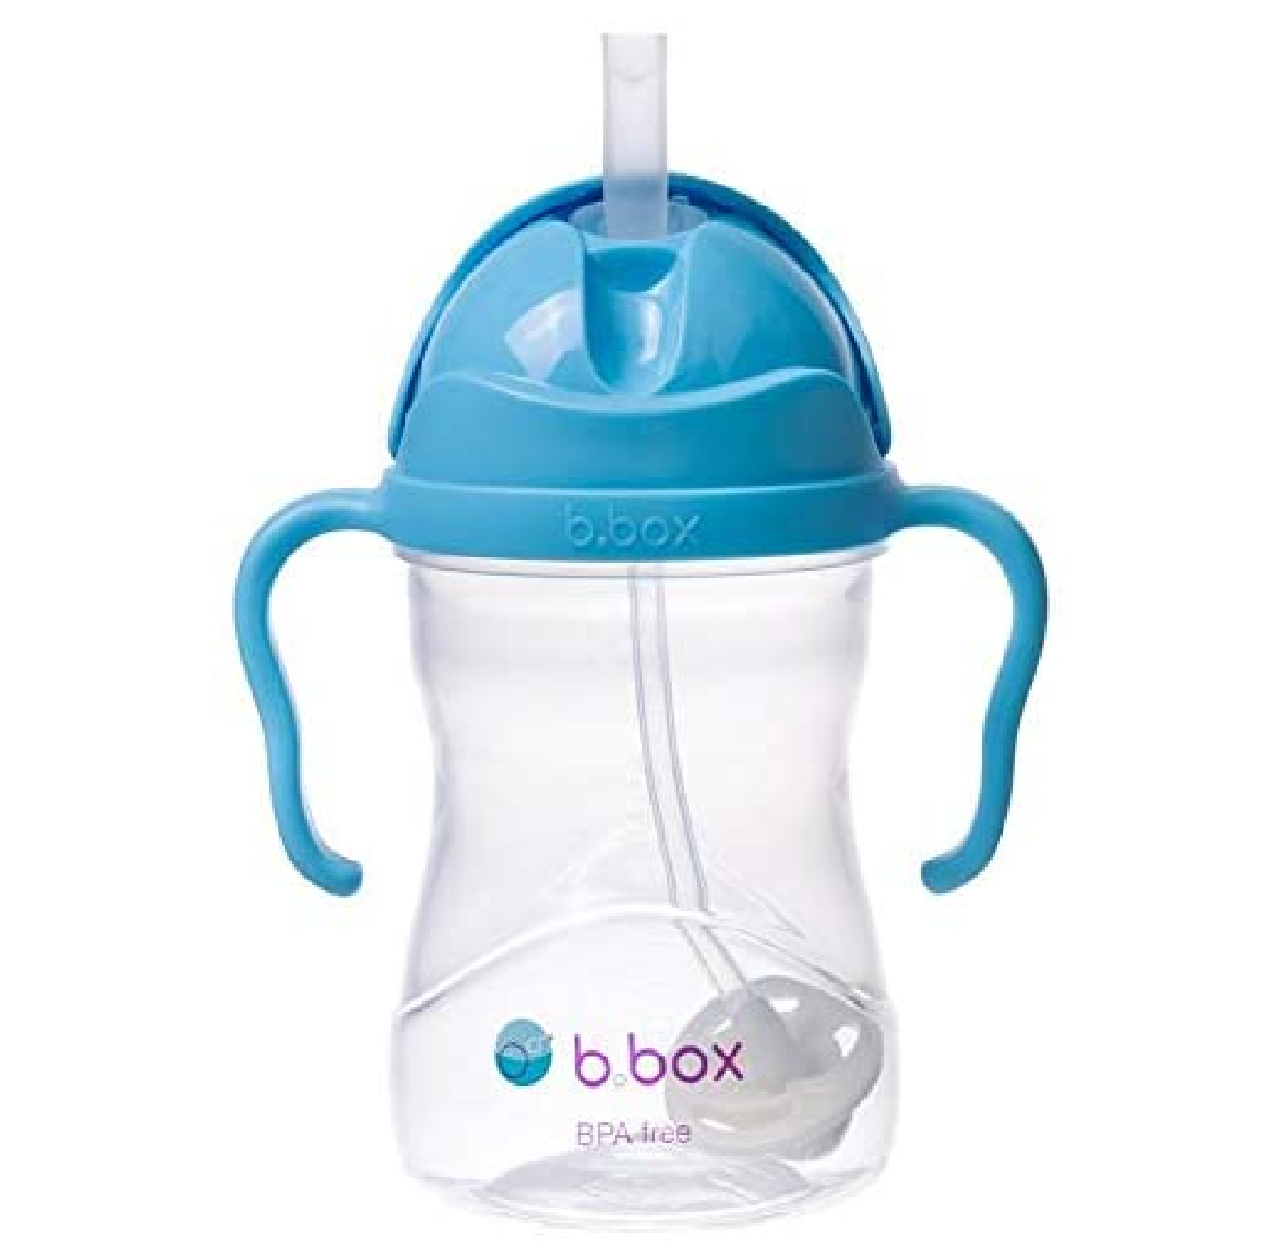 B.Box Sippy Cup Classic